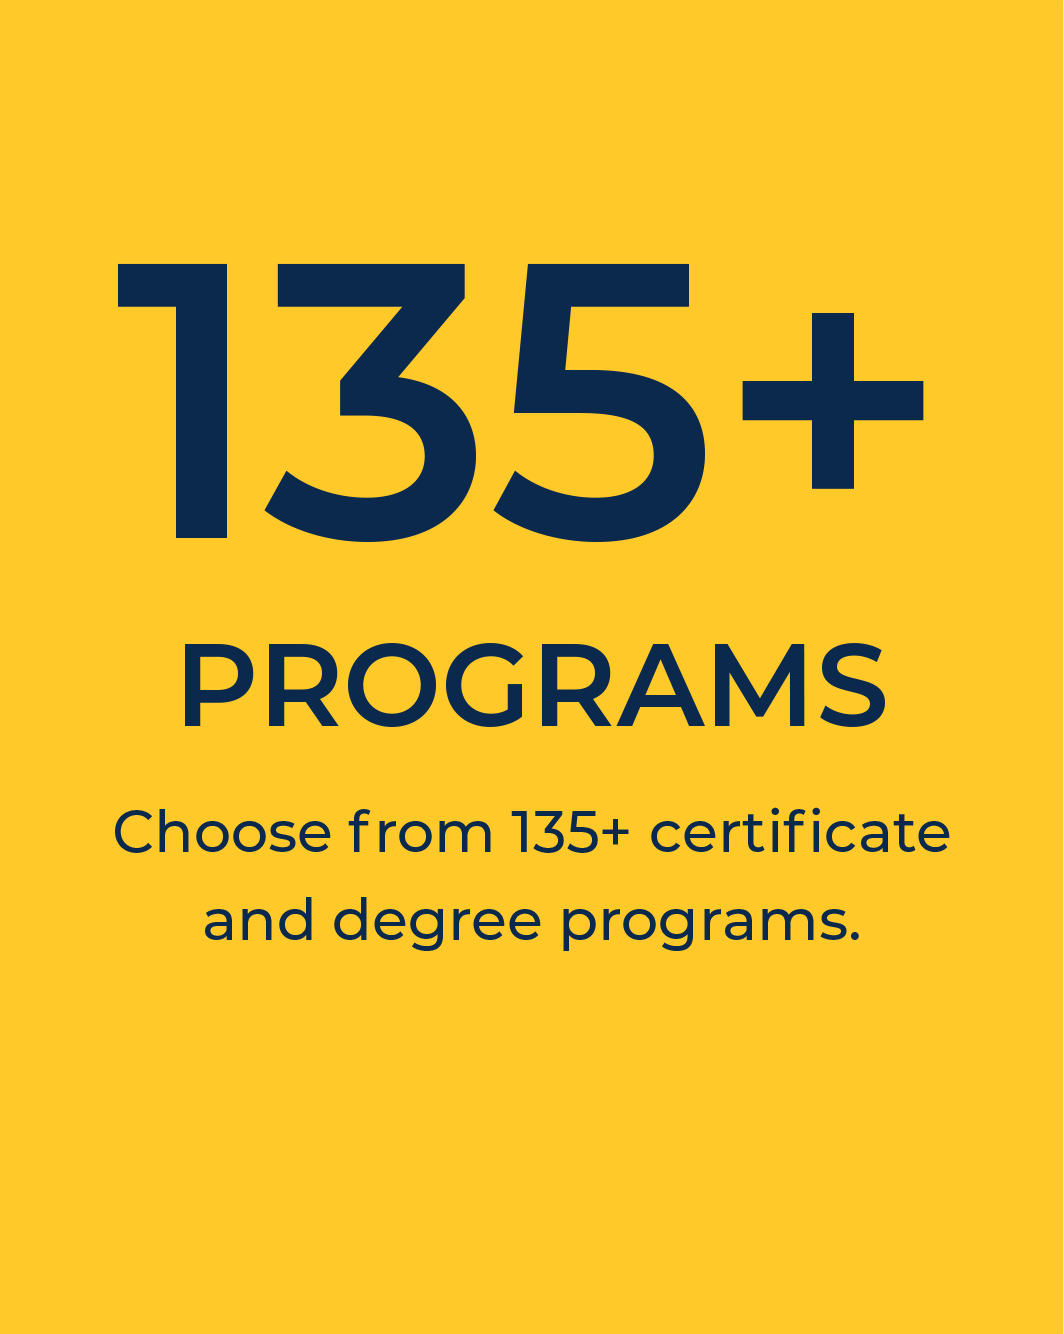 135+ certificate and degree programs